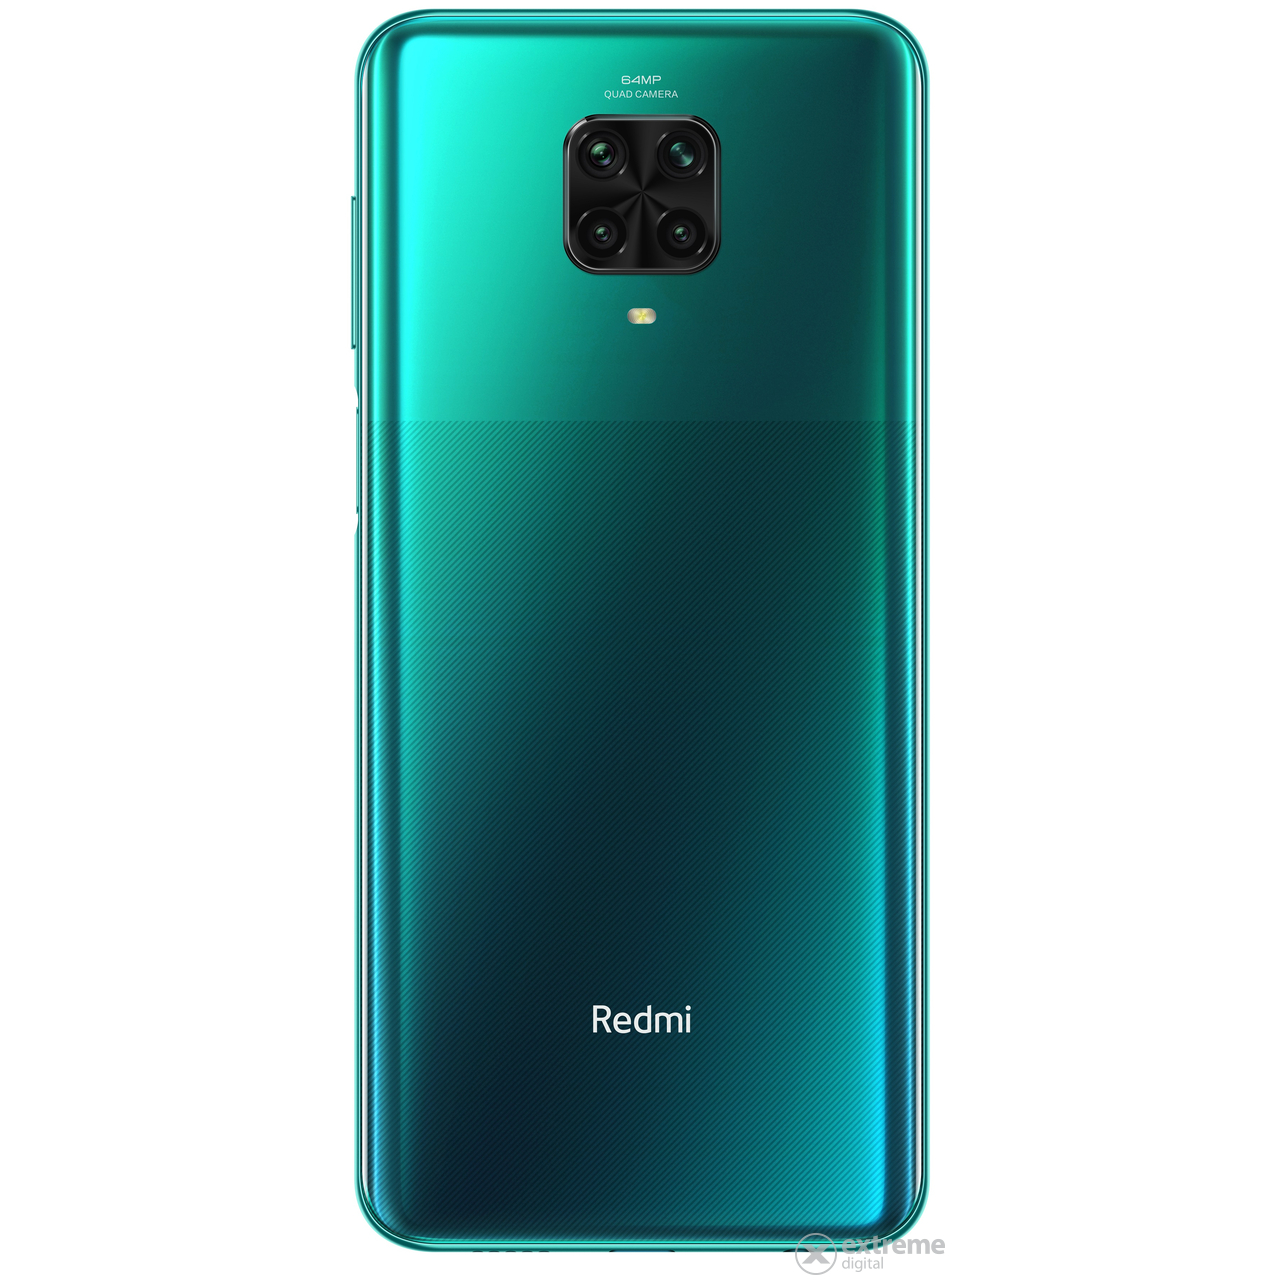 Xiaomi Redmi Note 9 Pro 6GB/64GB Dual SIM pametni telefon, Tropical Green